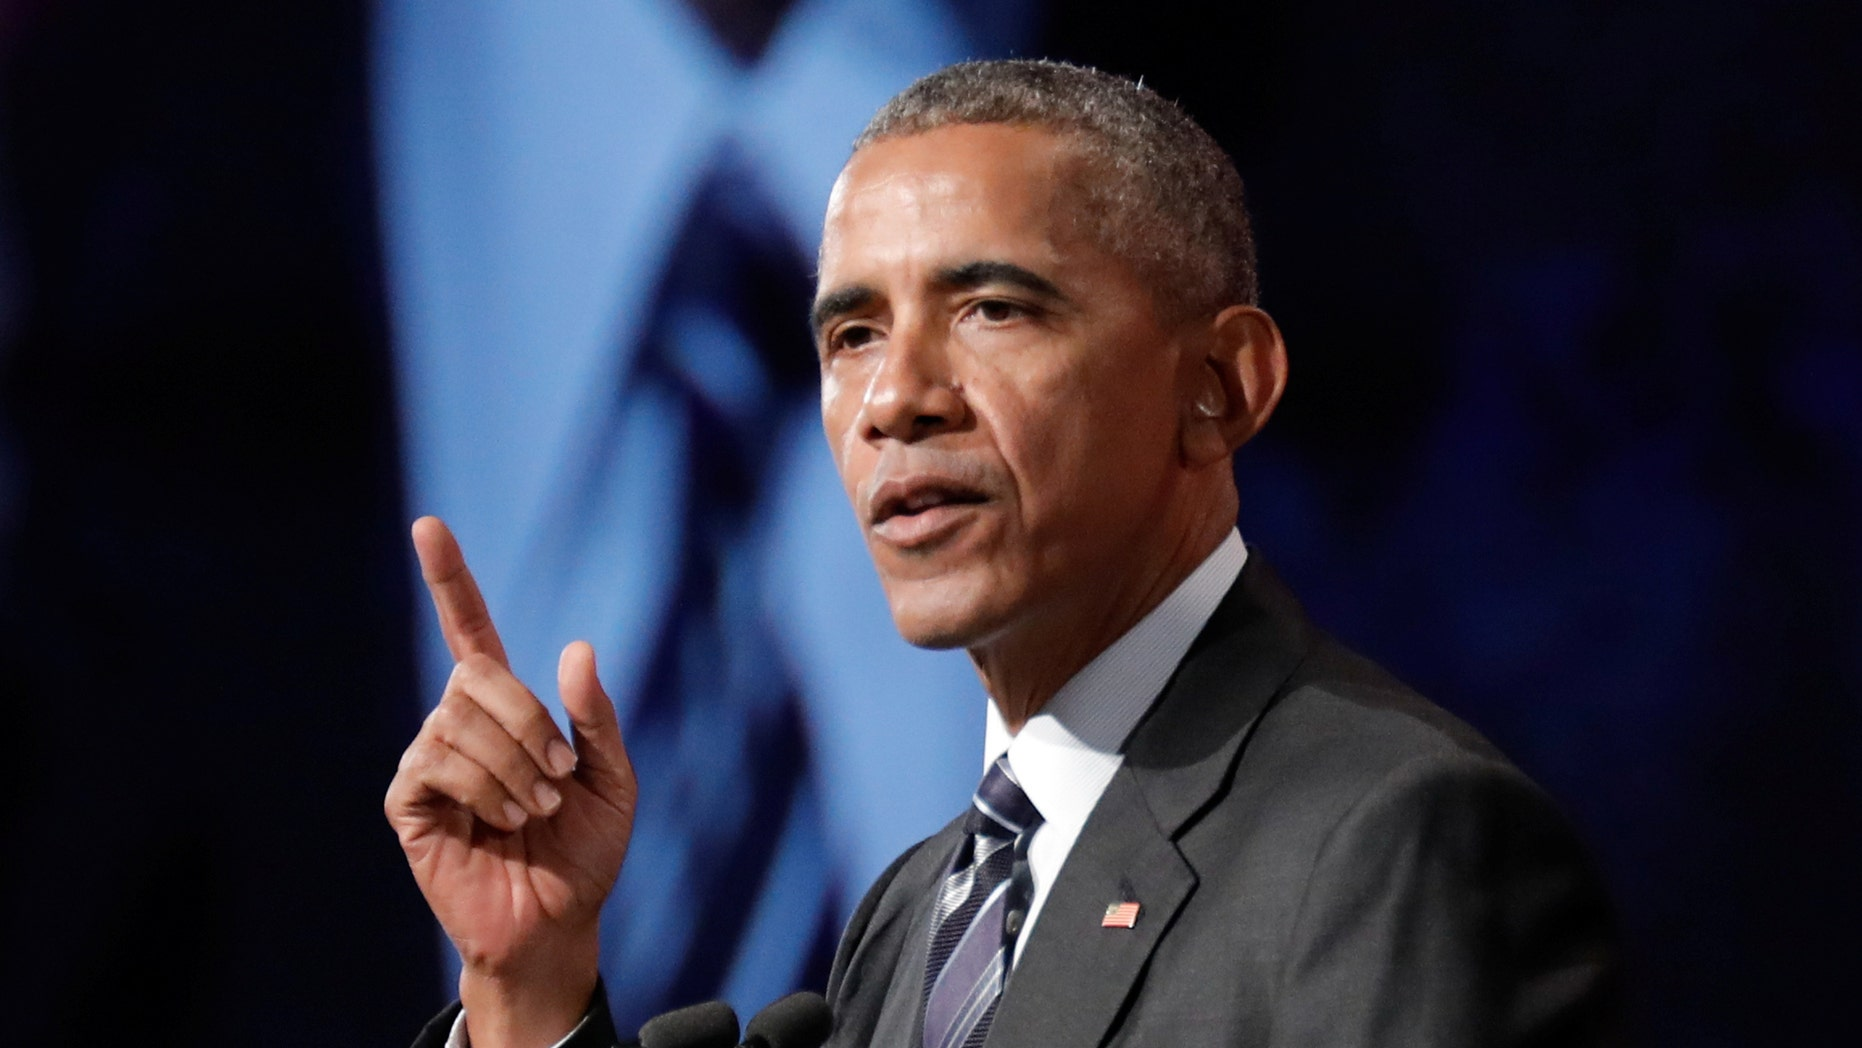 Former President Barack Obama criticized the decision of the Trump administration to end the DACA program on Tuesday.